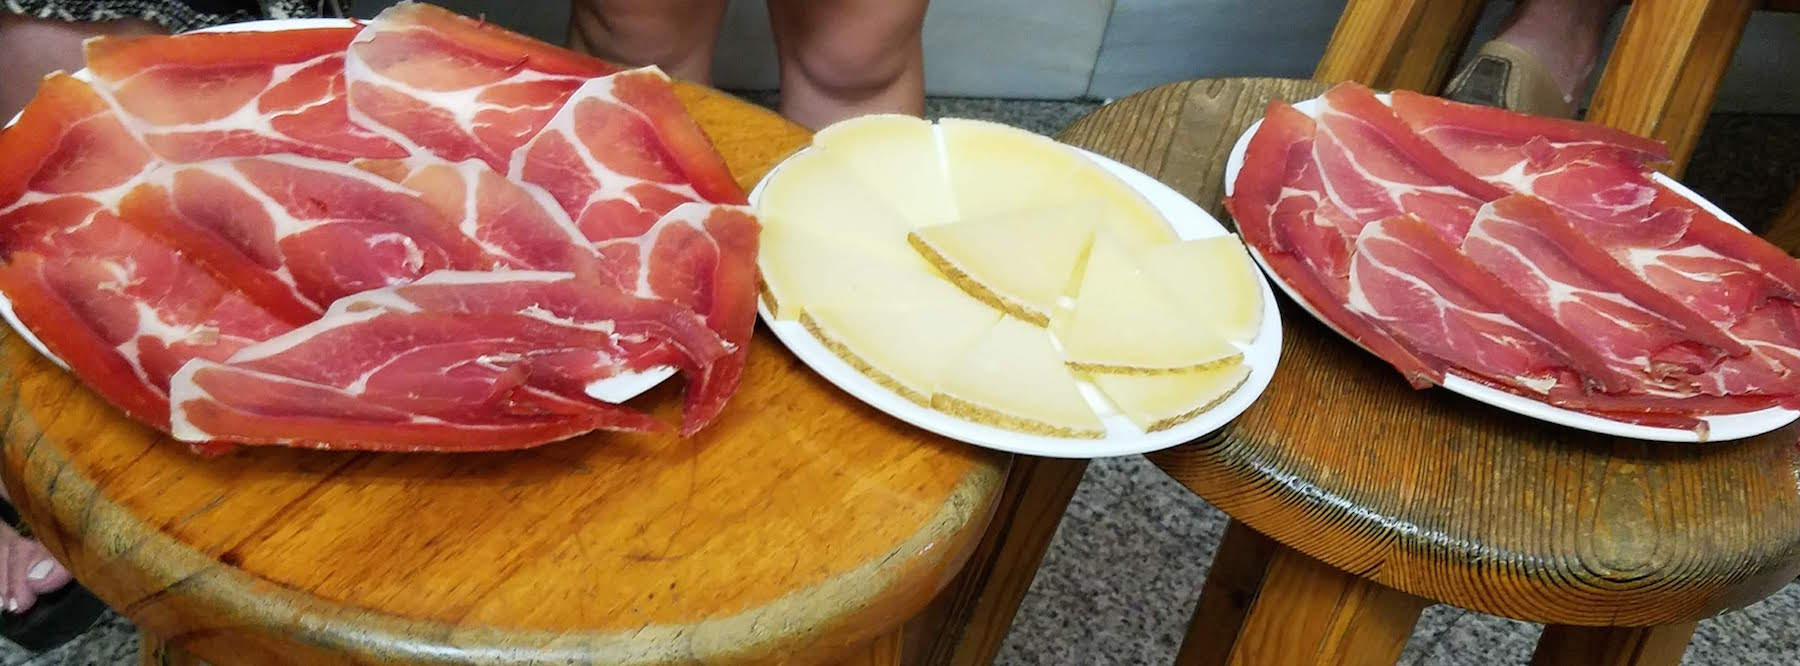 So. Much. Ham and Cheese. In Madrid.